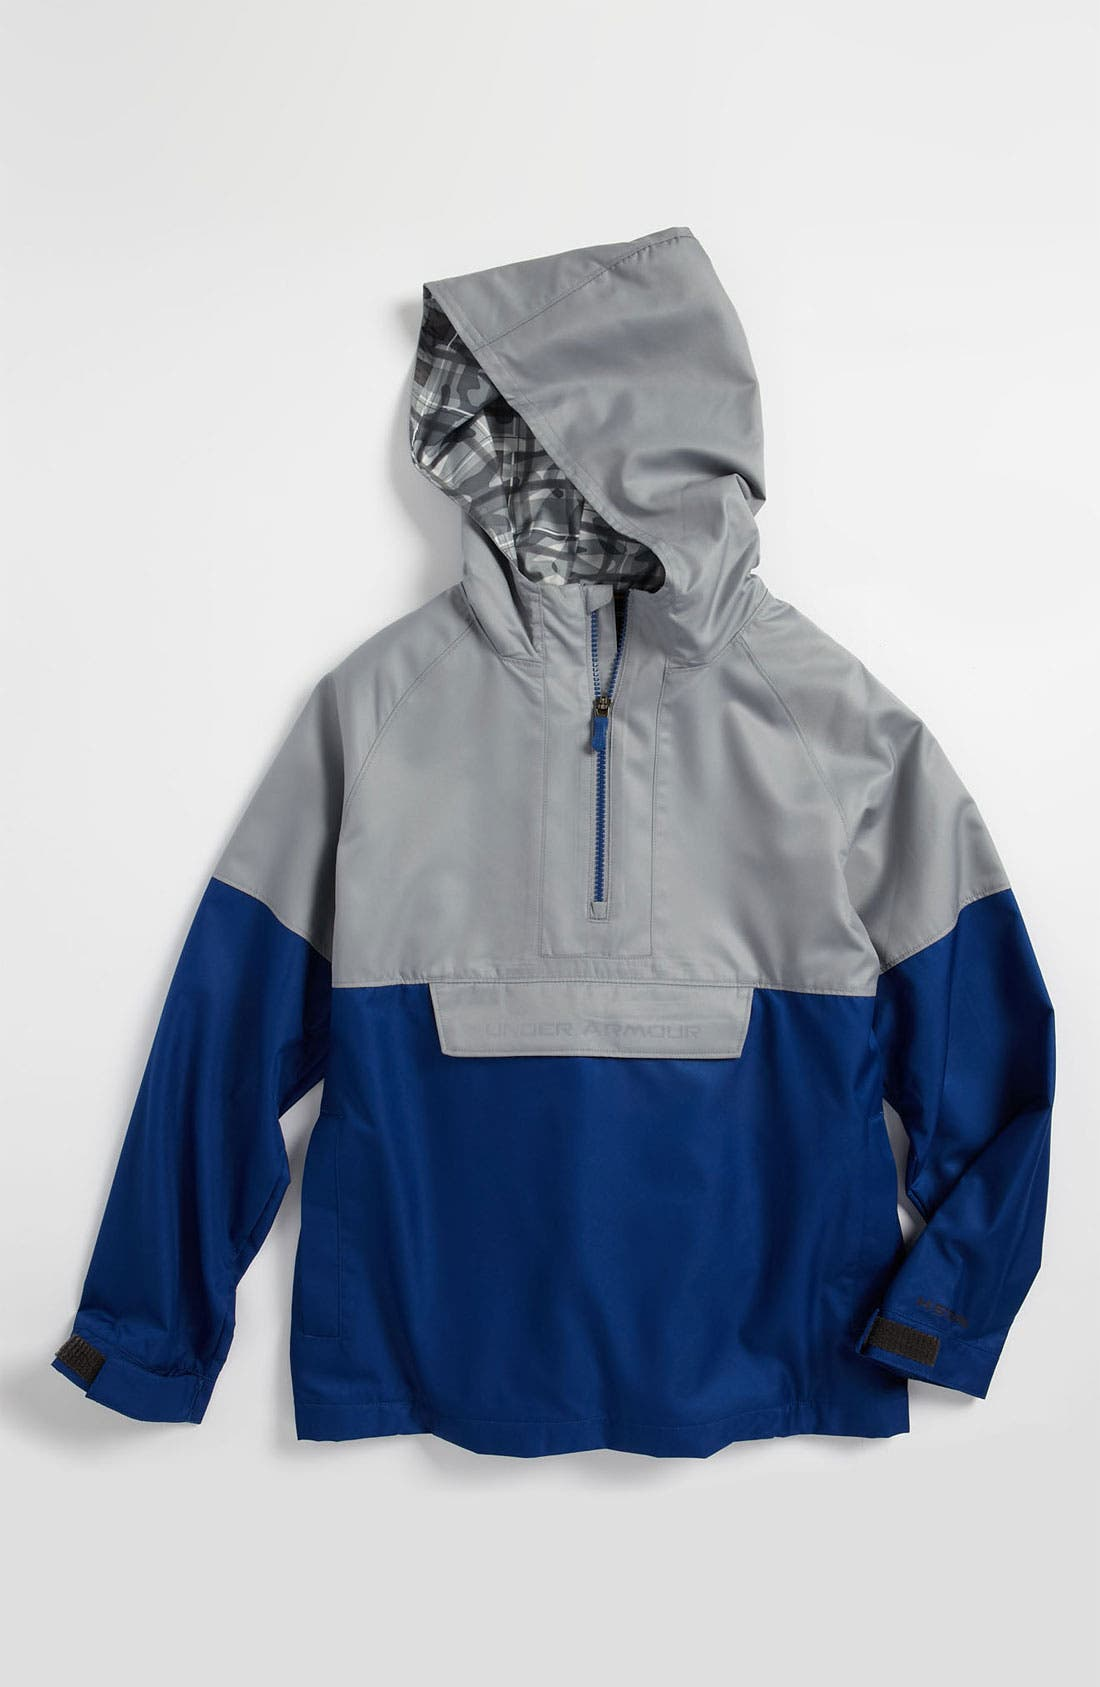 Alternate Image 1 Selected - Under Armour 'Anorak' Jacket (Big Boys)